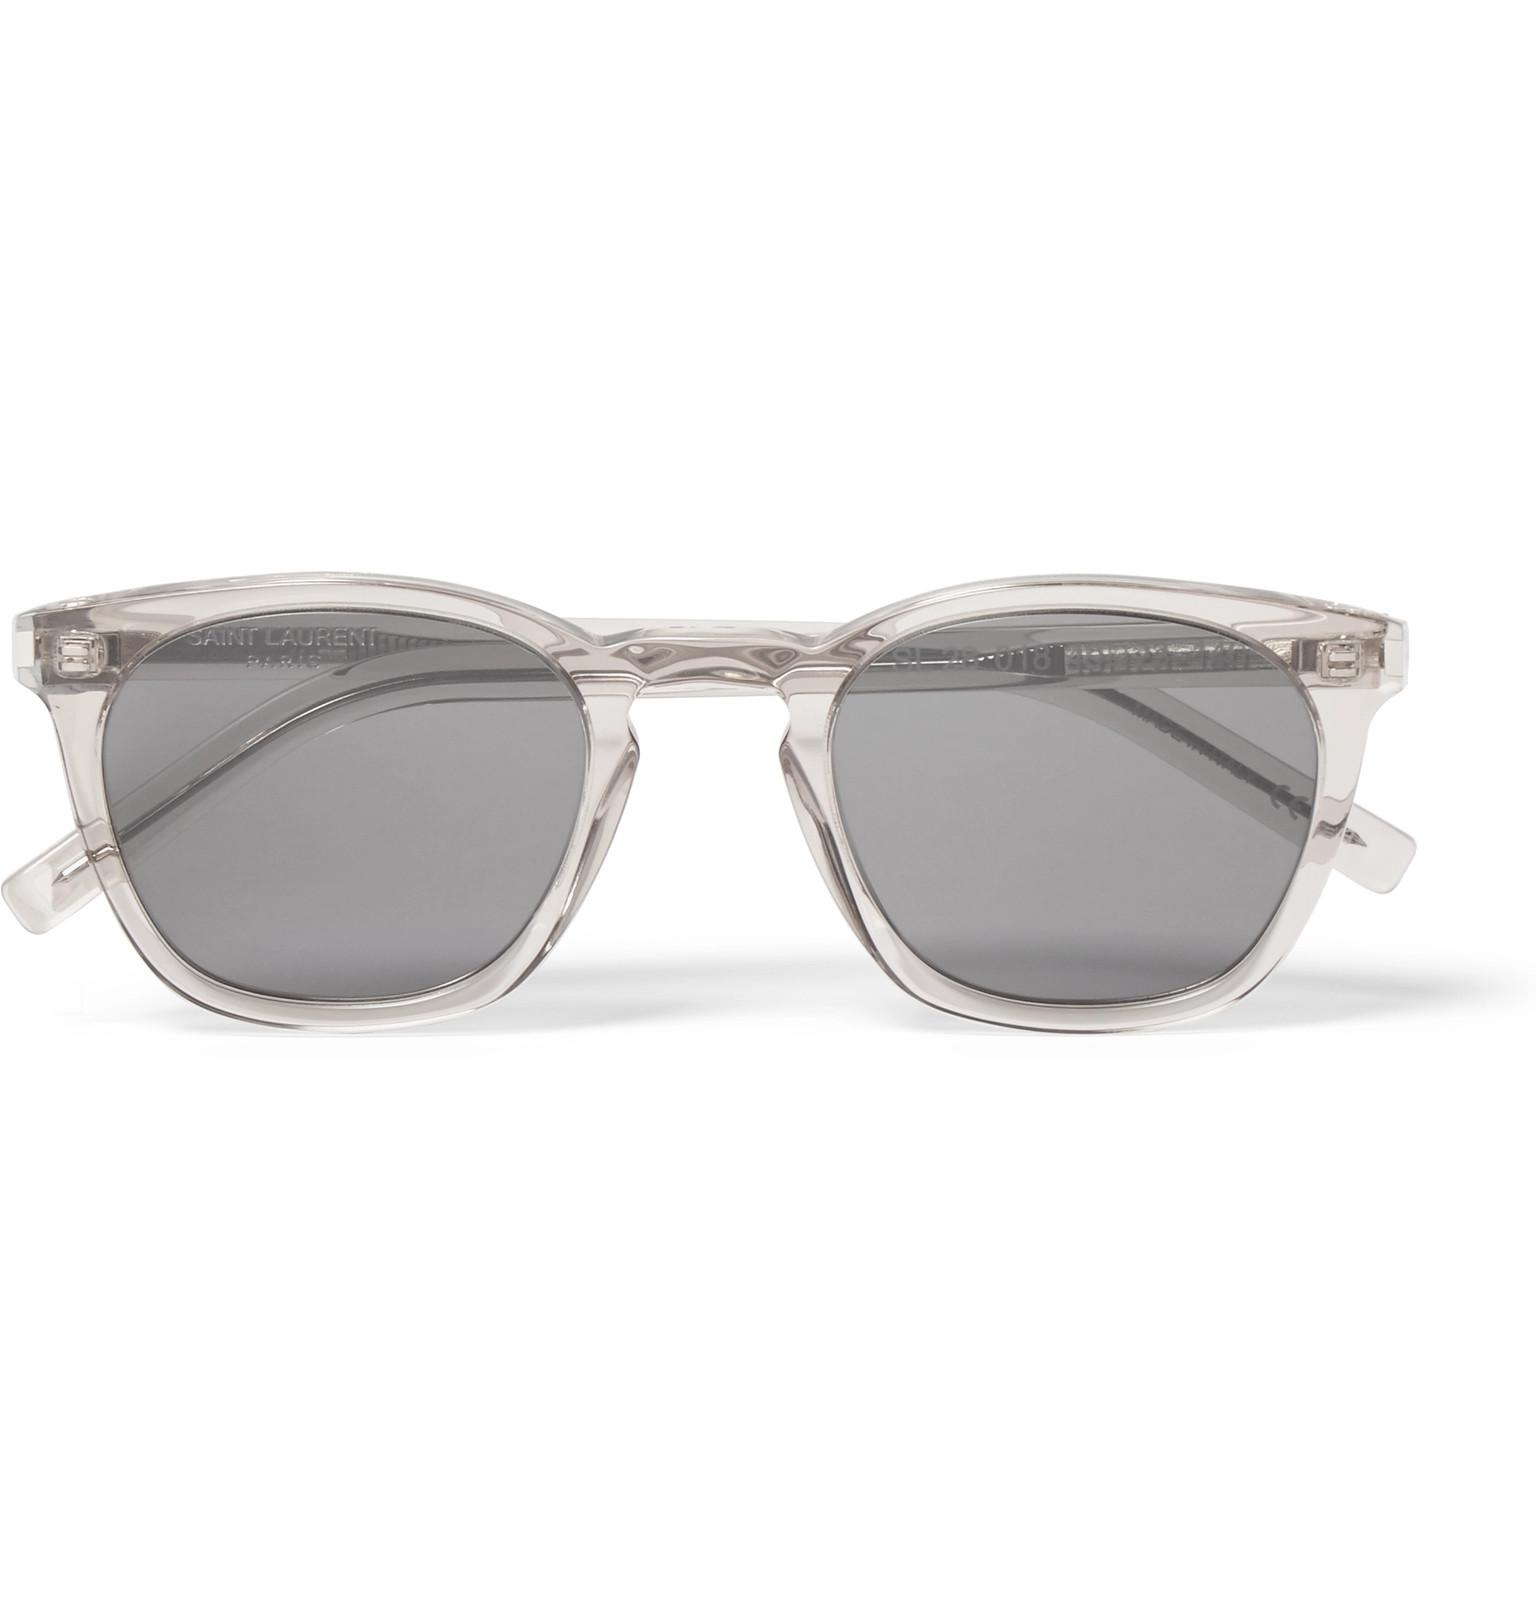 1b77bf87cf Saint Laurent D-frame Acetate Sunglasses in Gray for Men - Lyst